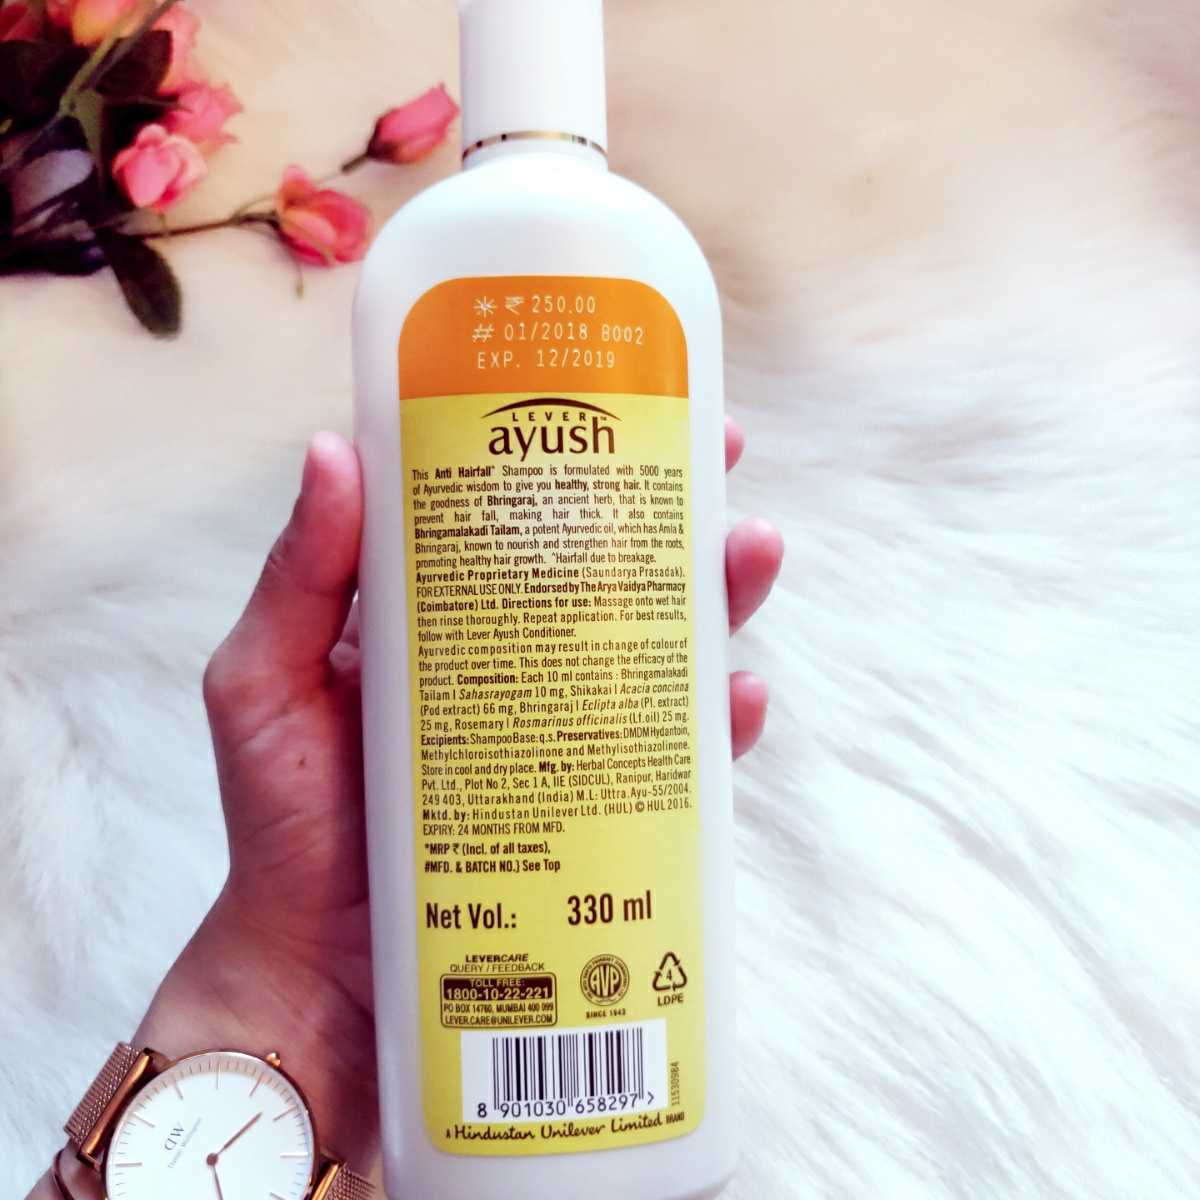 Lever Ayush Anti Hairfall Bhringaraj Shampoo Review